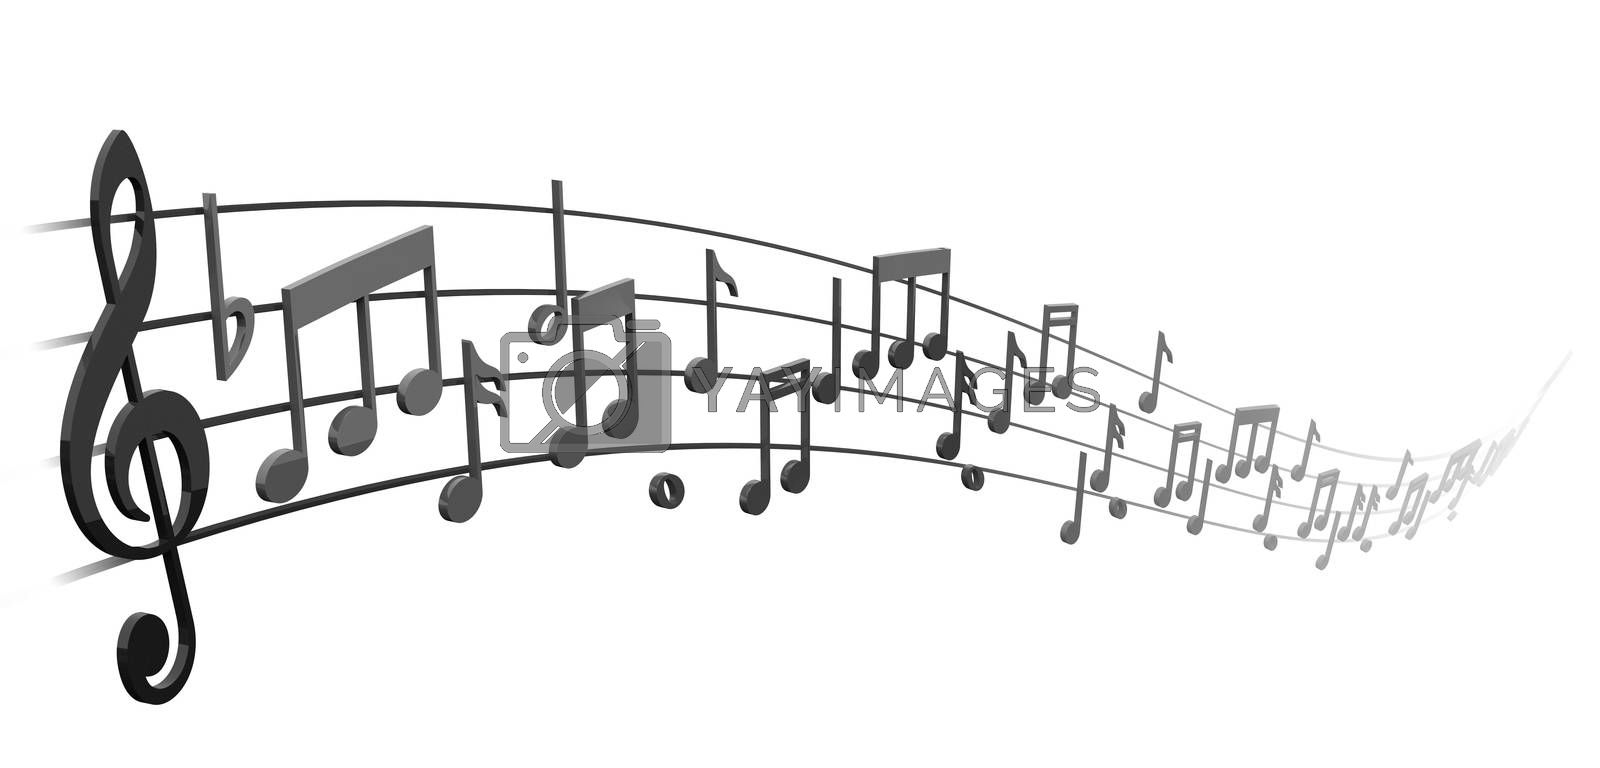 Royalty free image of notes on the musical staff by XStudio3D